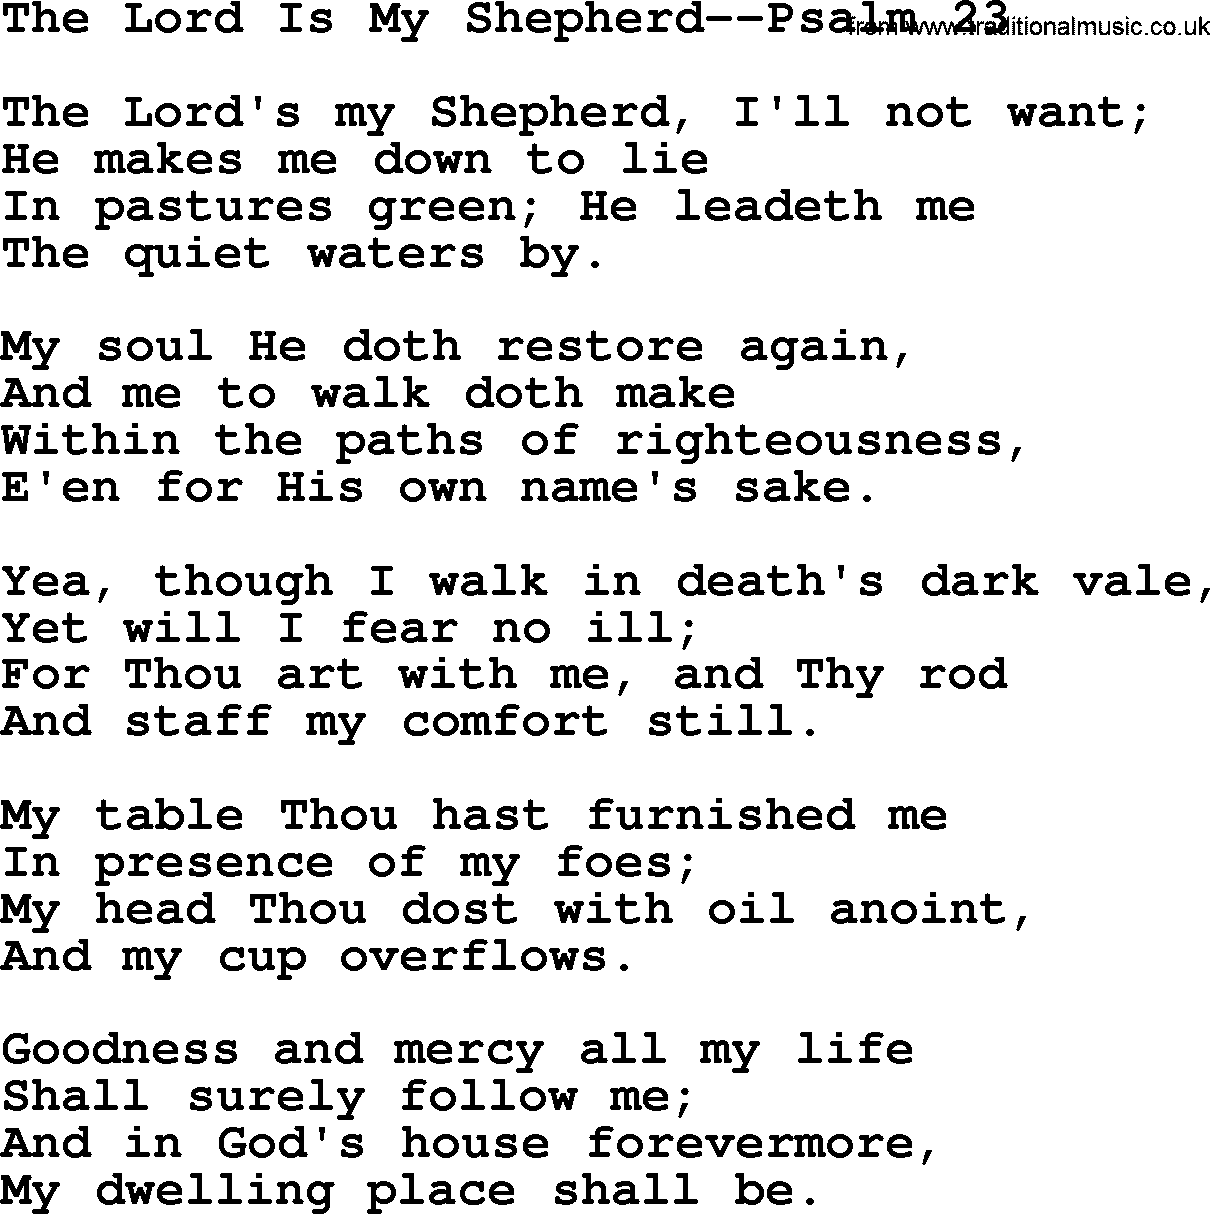 Wedding Hymns And Songs The Lord Is My Shepherd Psalm 23 Txt Lyrics Chords And Pdf